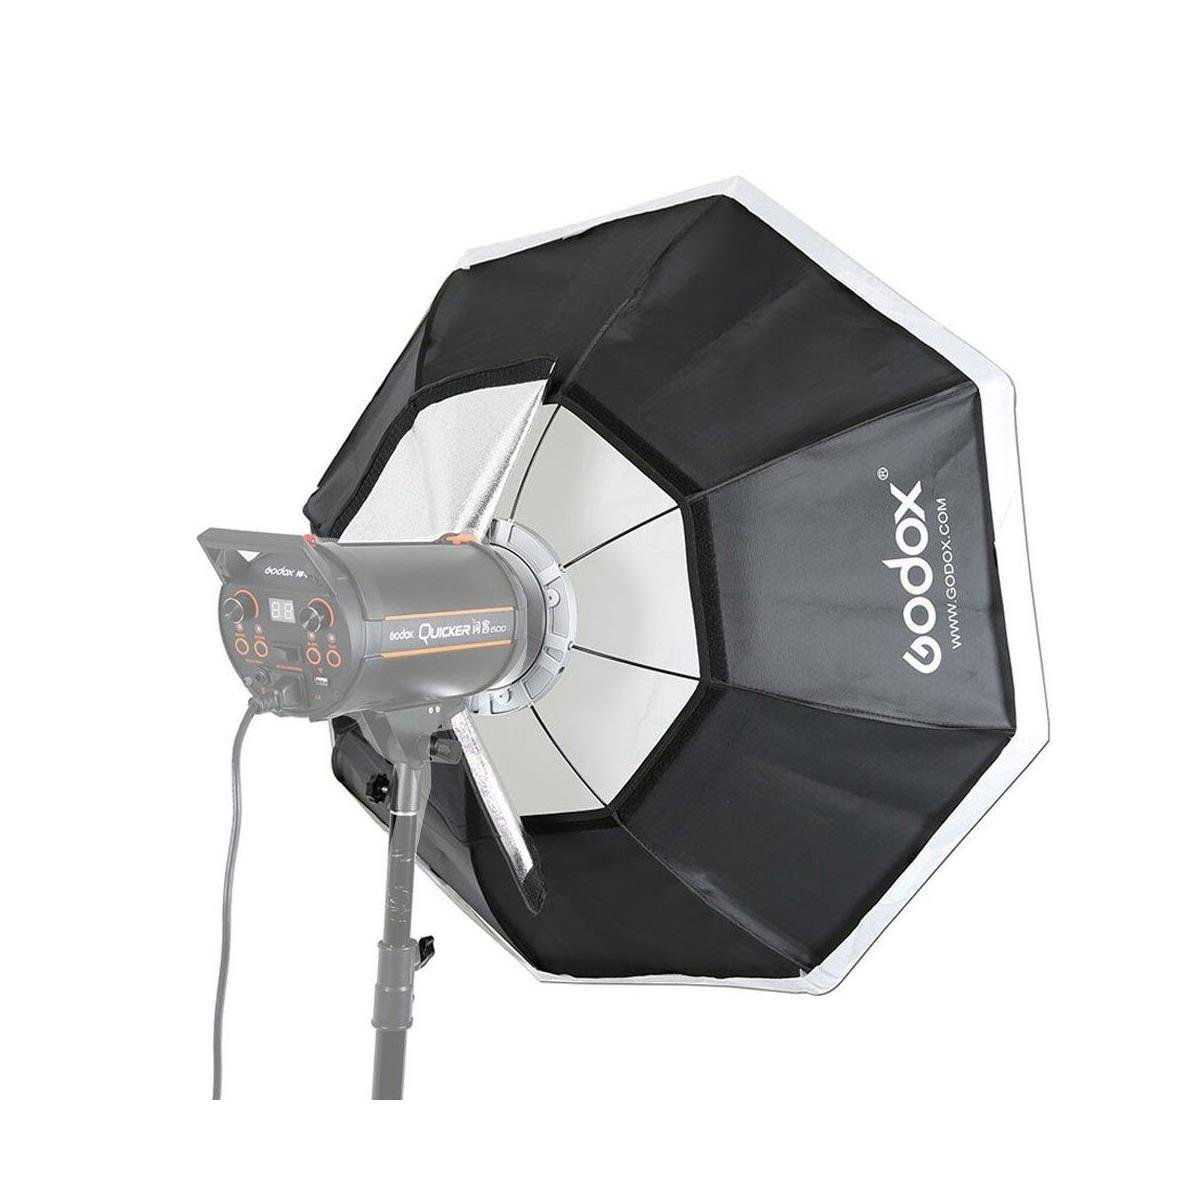 Godox 37'' Octagon Softbox with Bowens Mounting by Godox